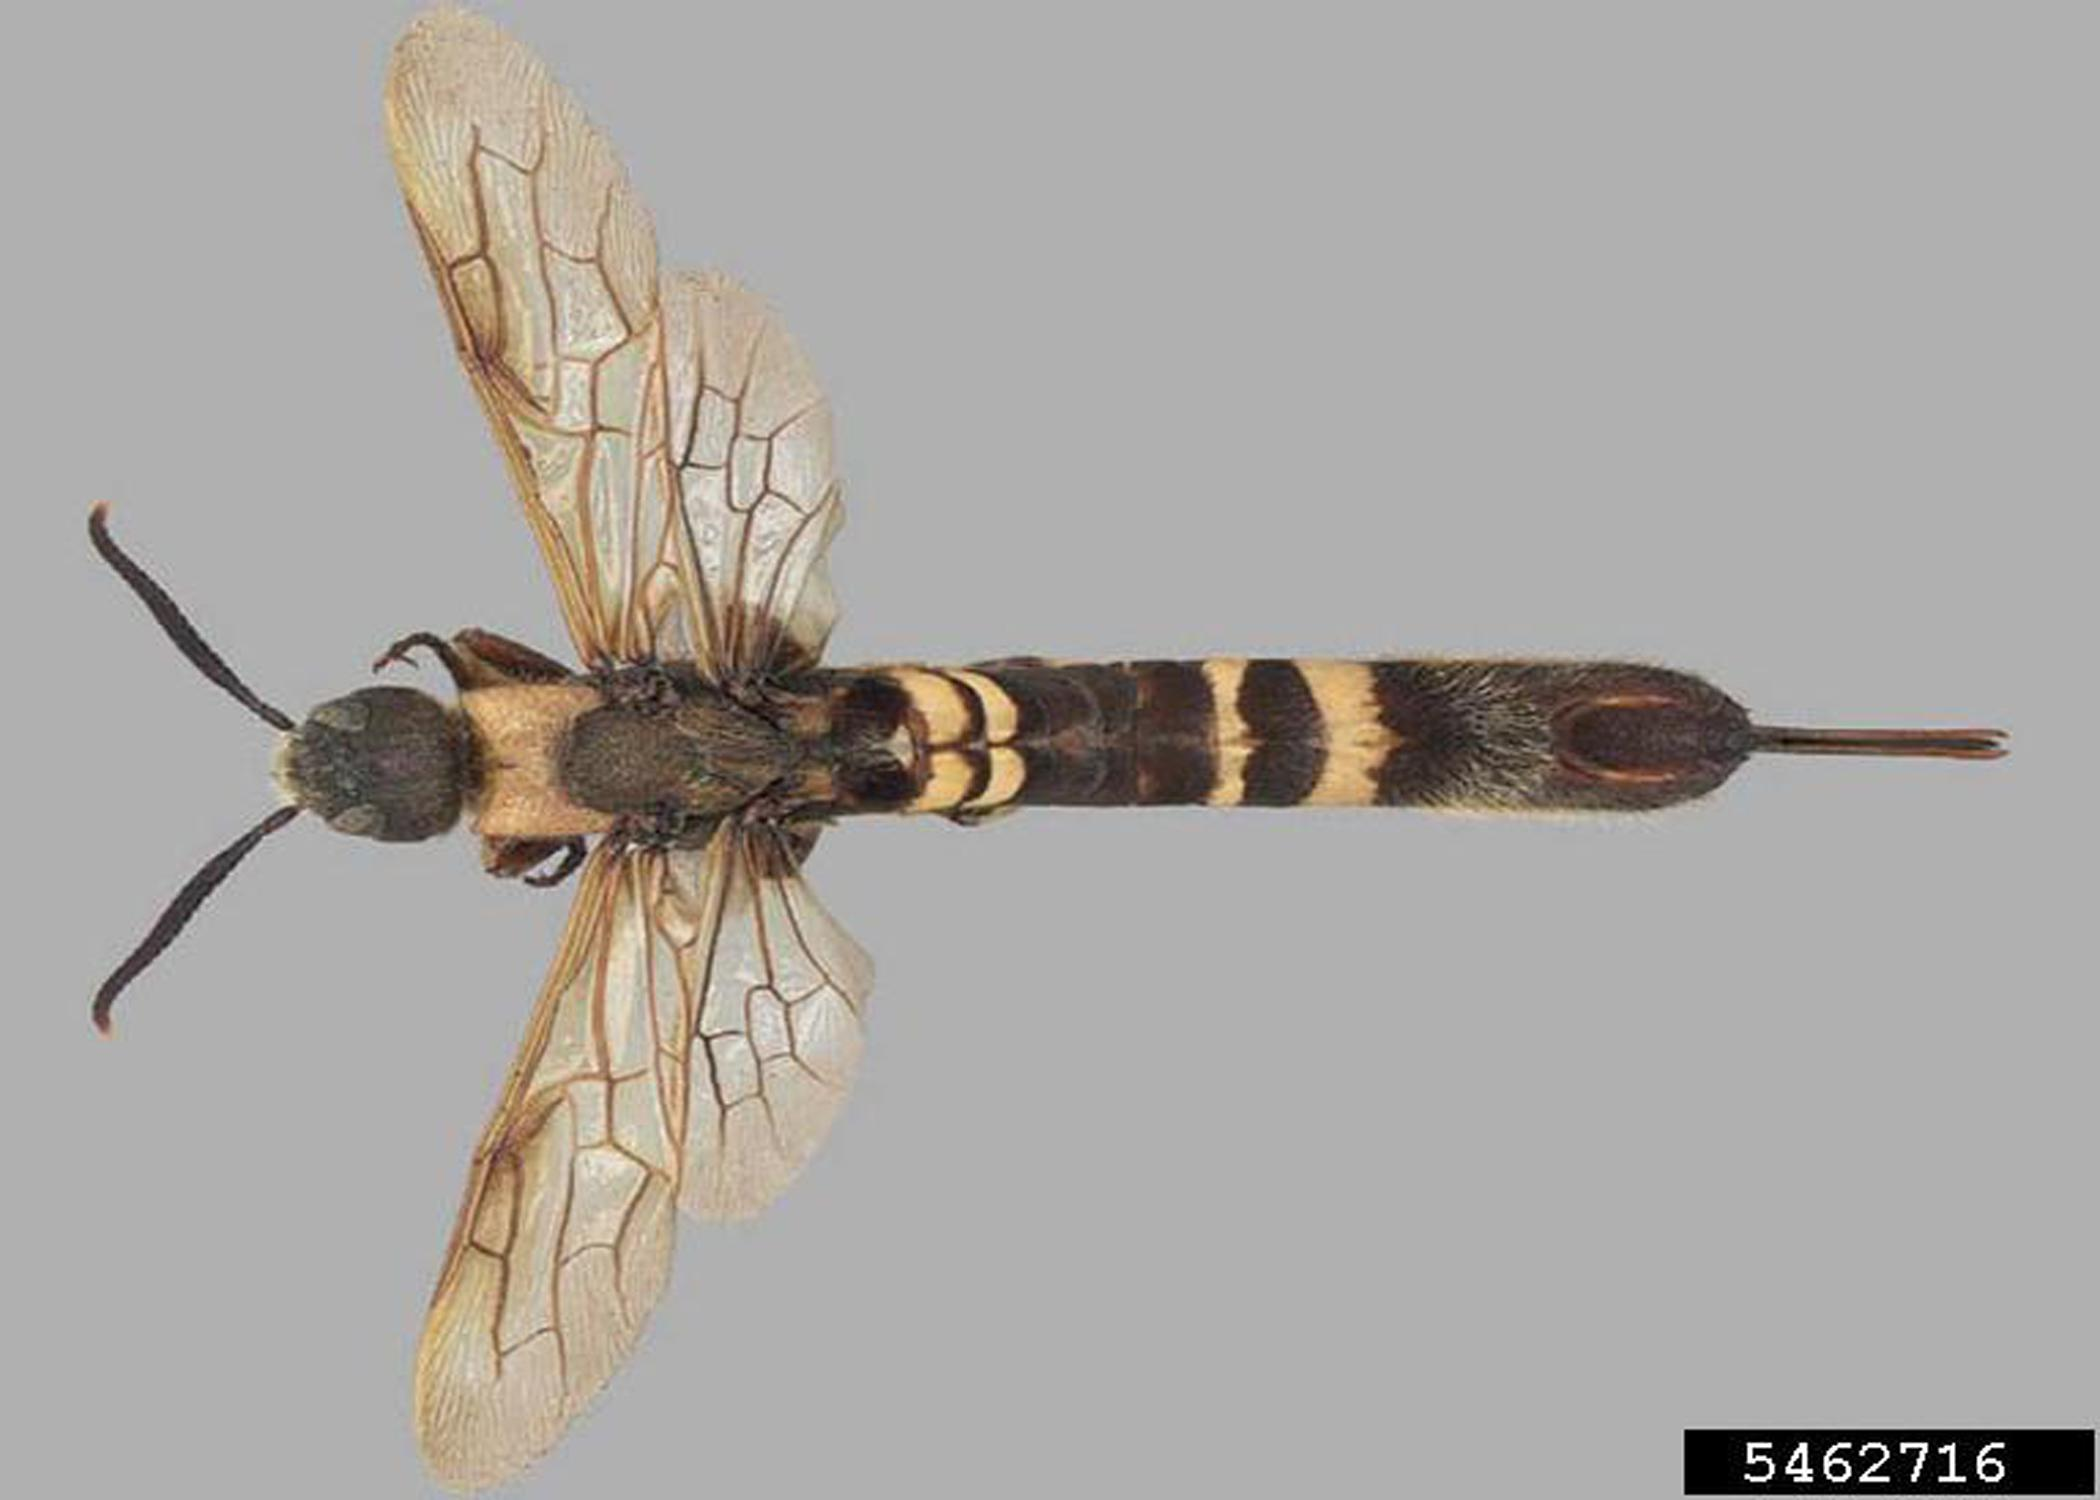 A photo of a female Asian horntail wasp.